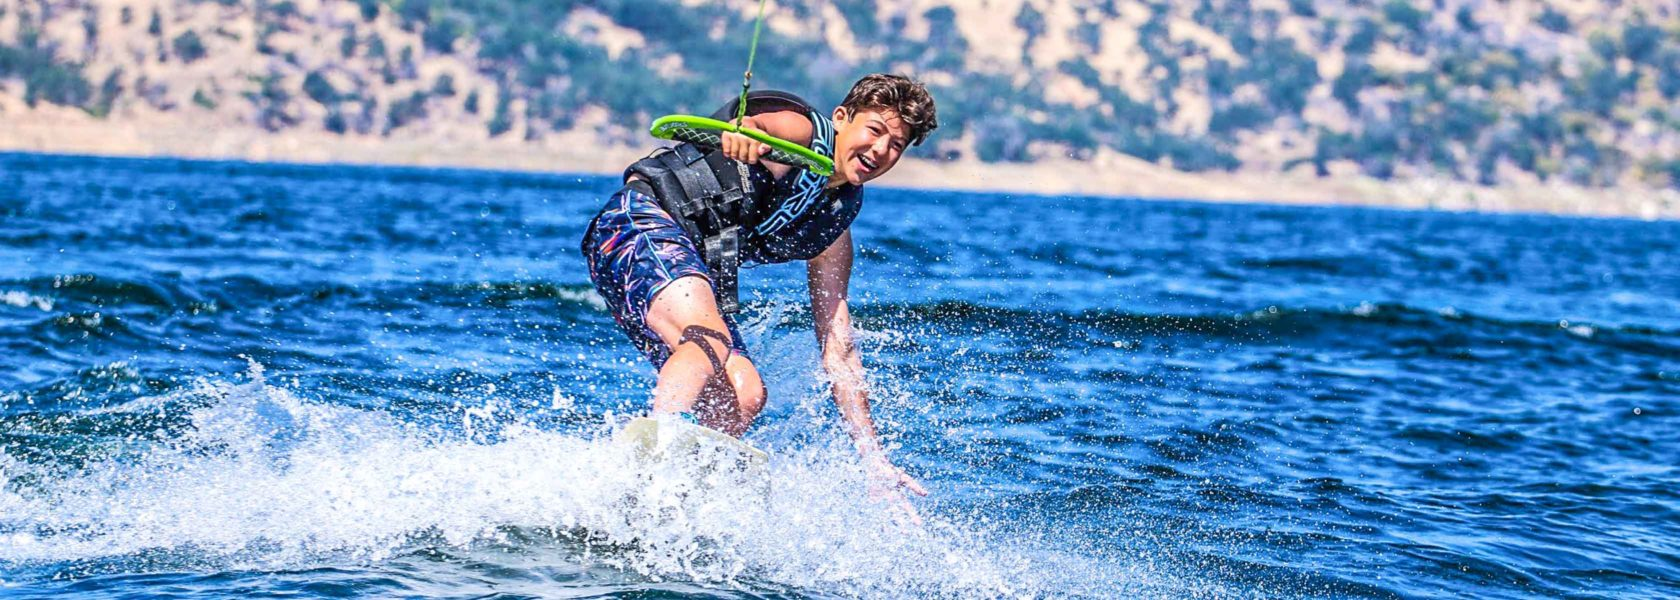 A camper having fun wakeboarding